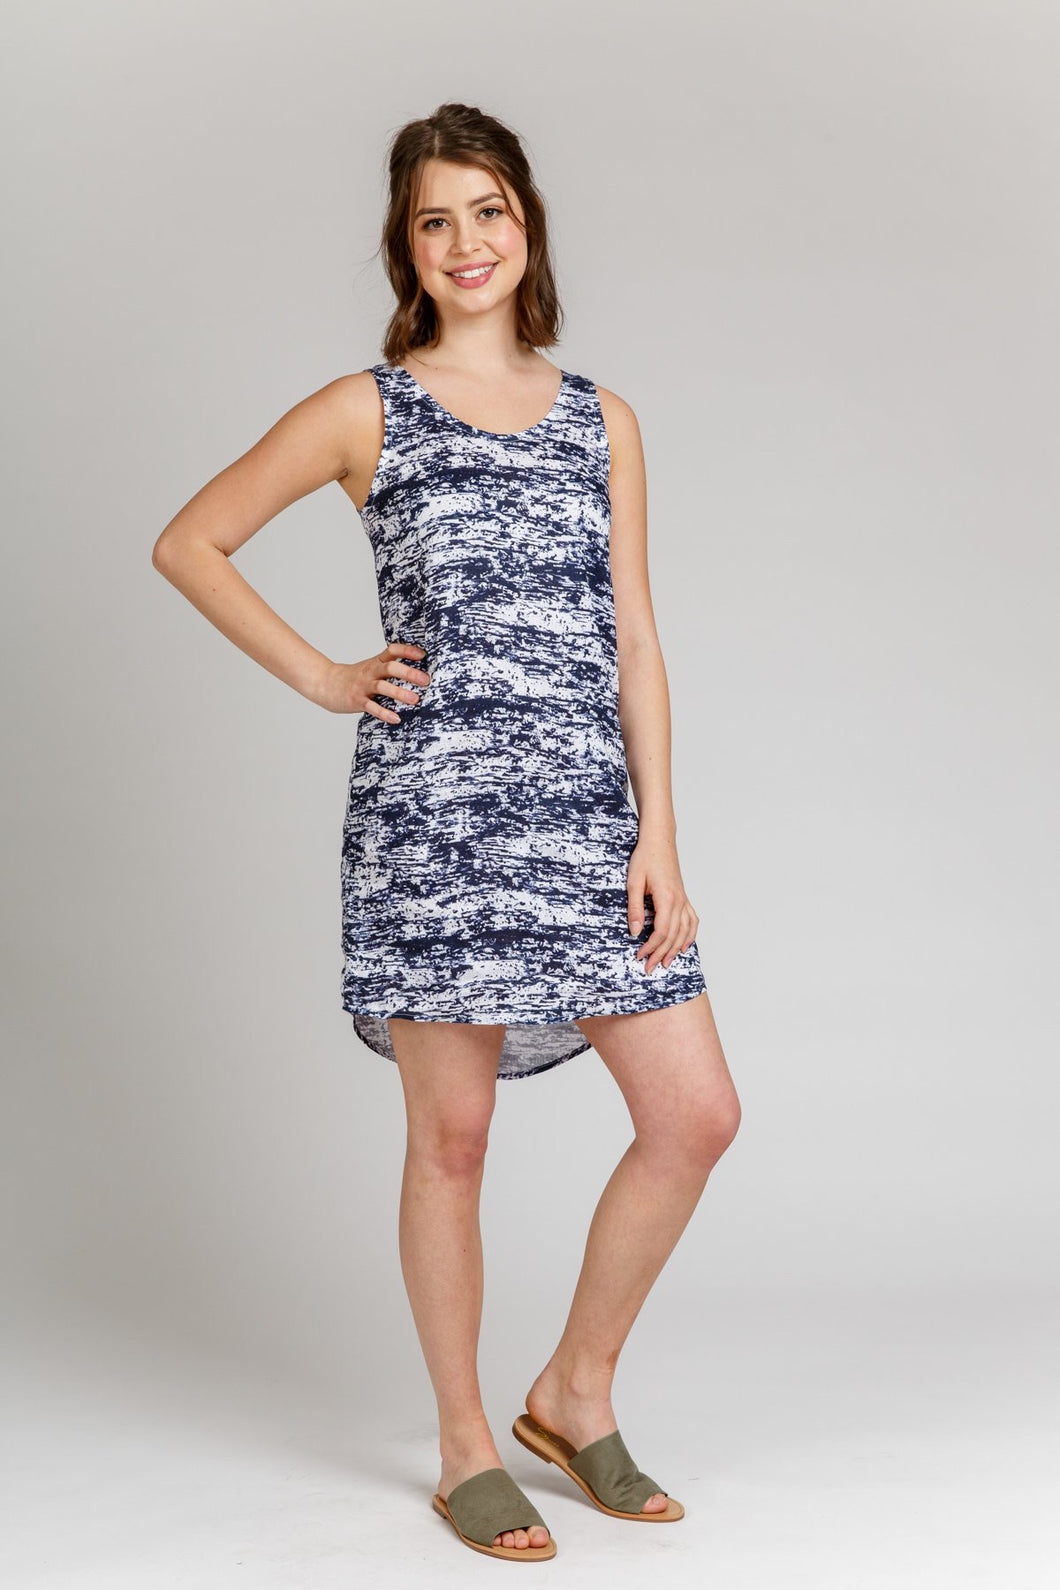 Megan Neilson Eucalypt Tank Top and Dress